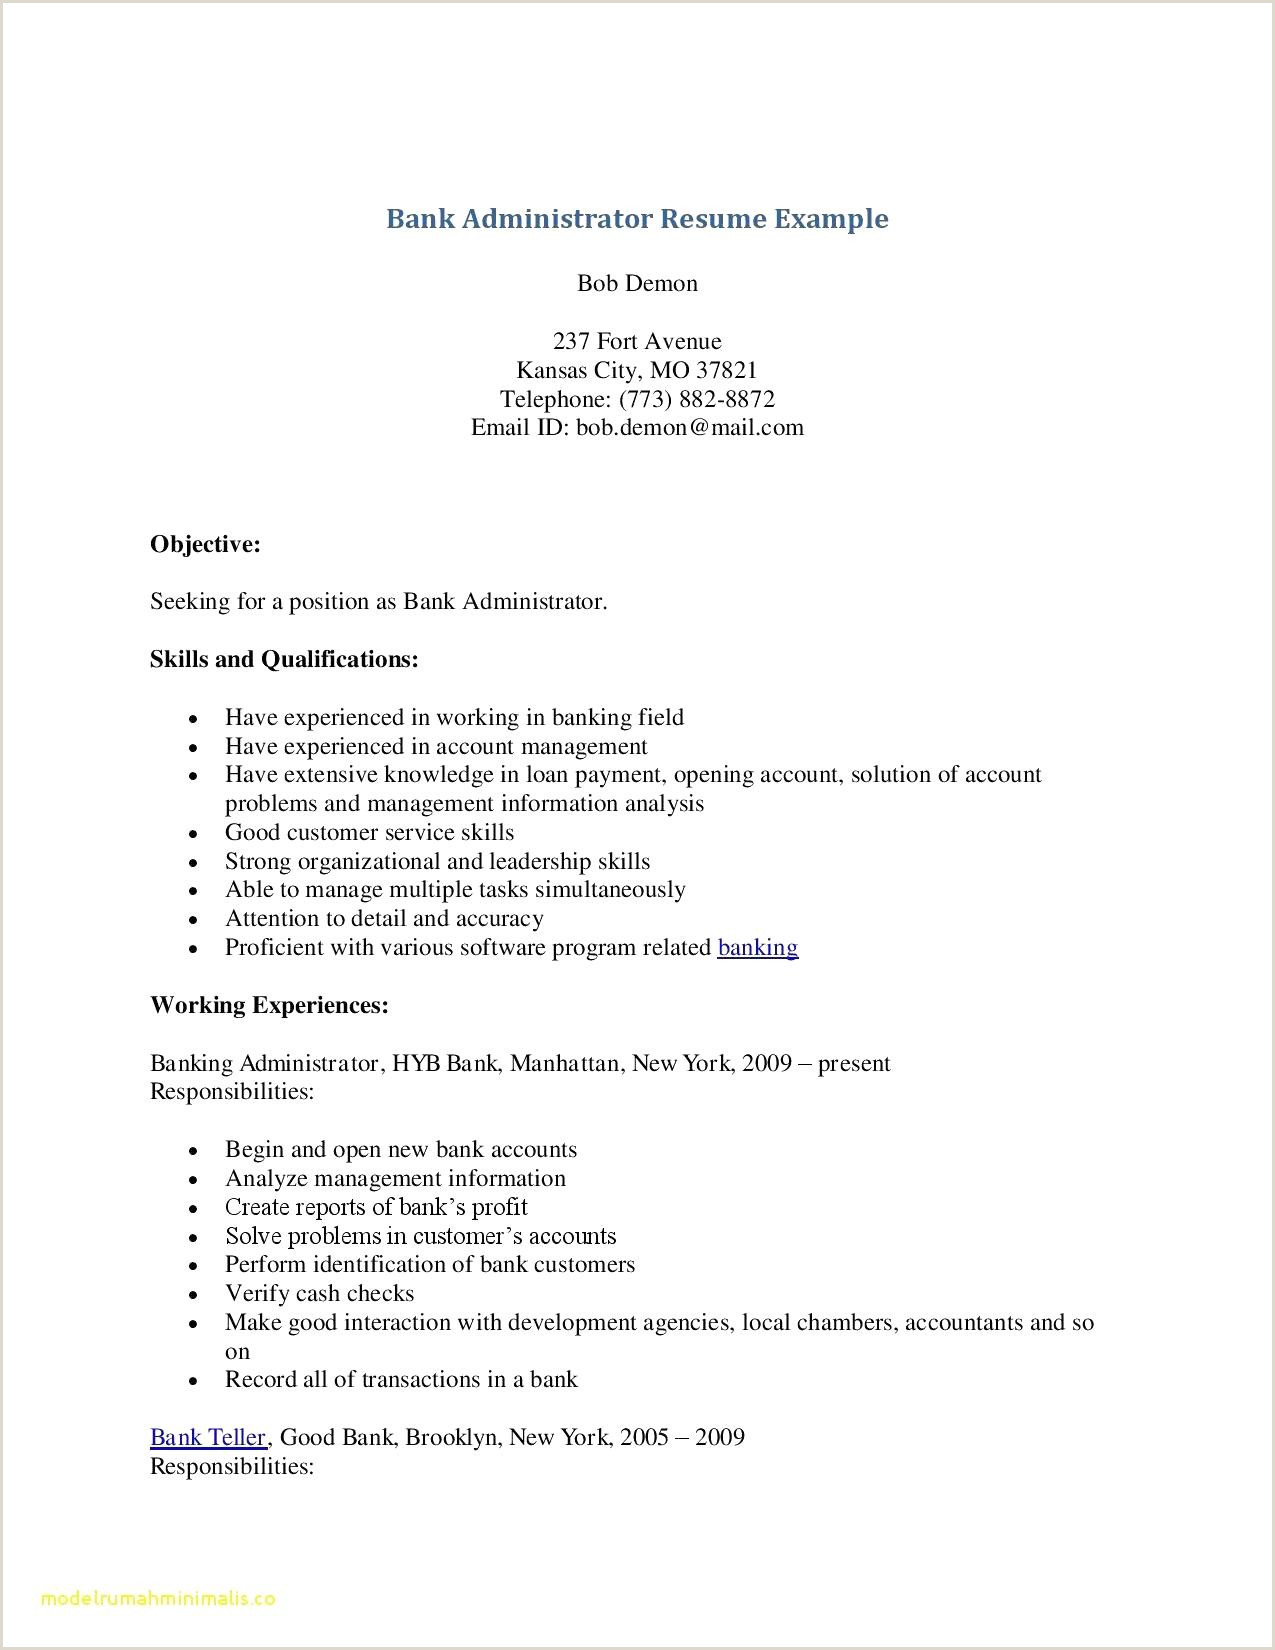 Flight attendant Resumes No Experience 82 Flight attendant Resume Examples 6 Flight attendant